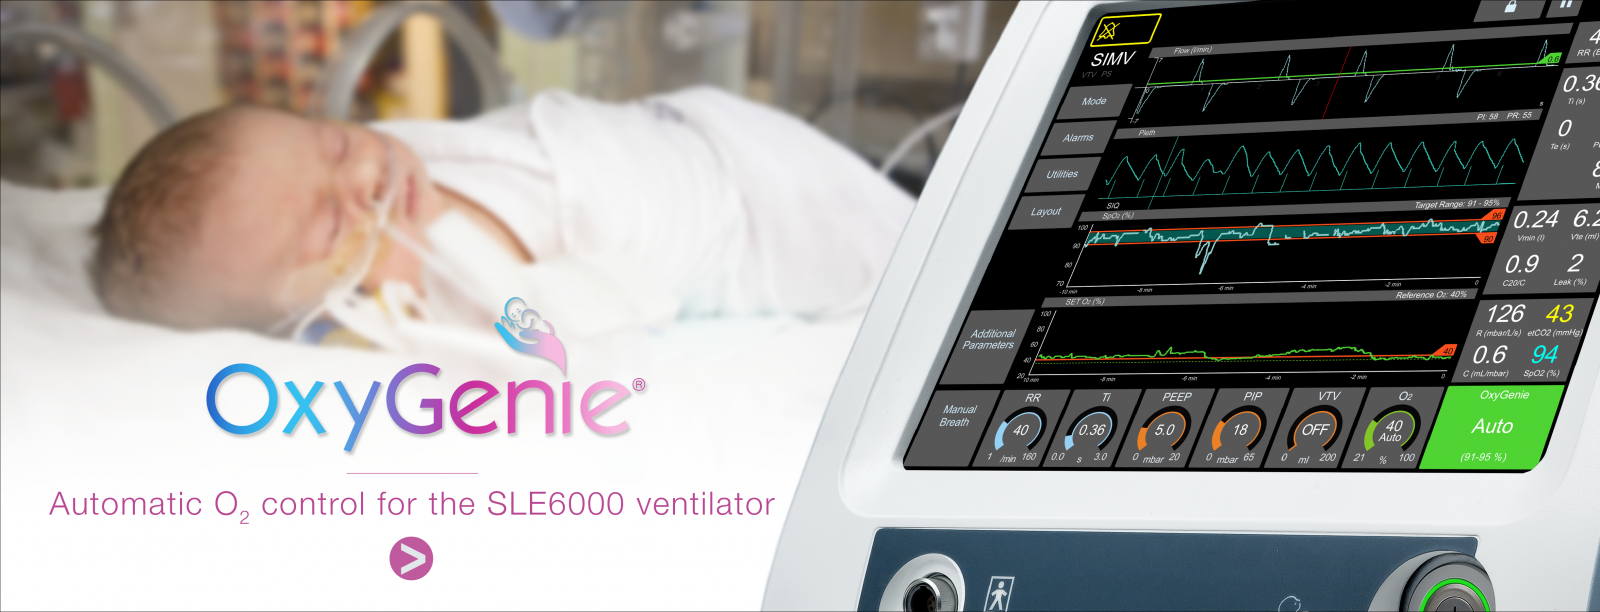 Automatic O2 Control for the SLE6000 Ventilator